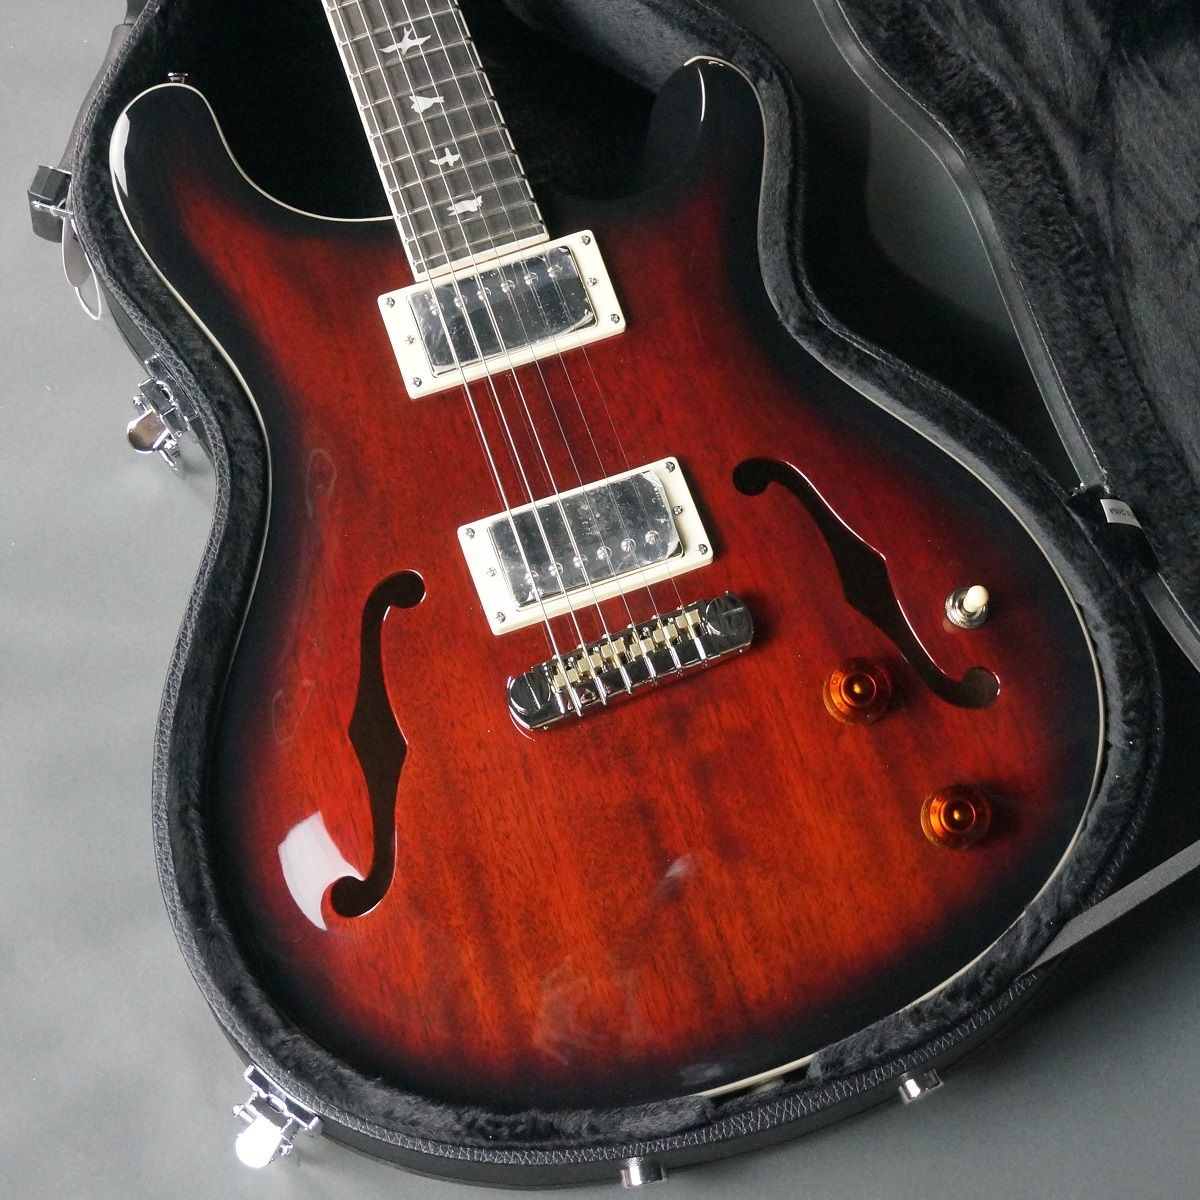 Paul Reed Smith(PRS) SE Hollowbody Standard / Fire Red Burst 【フーチーズ・チューンにセットアップいたします!!】